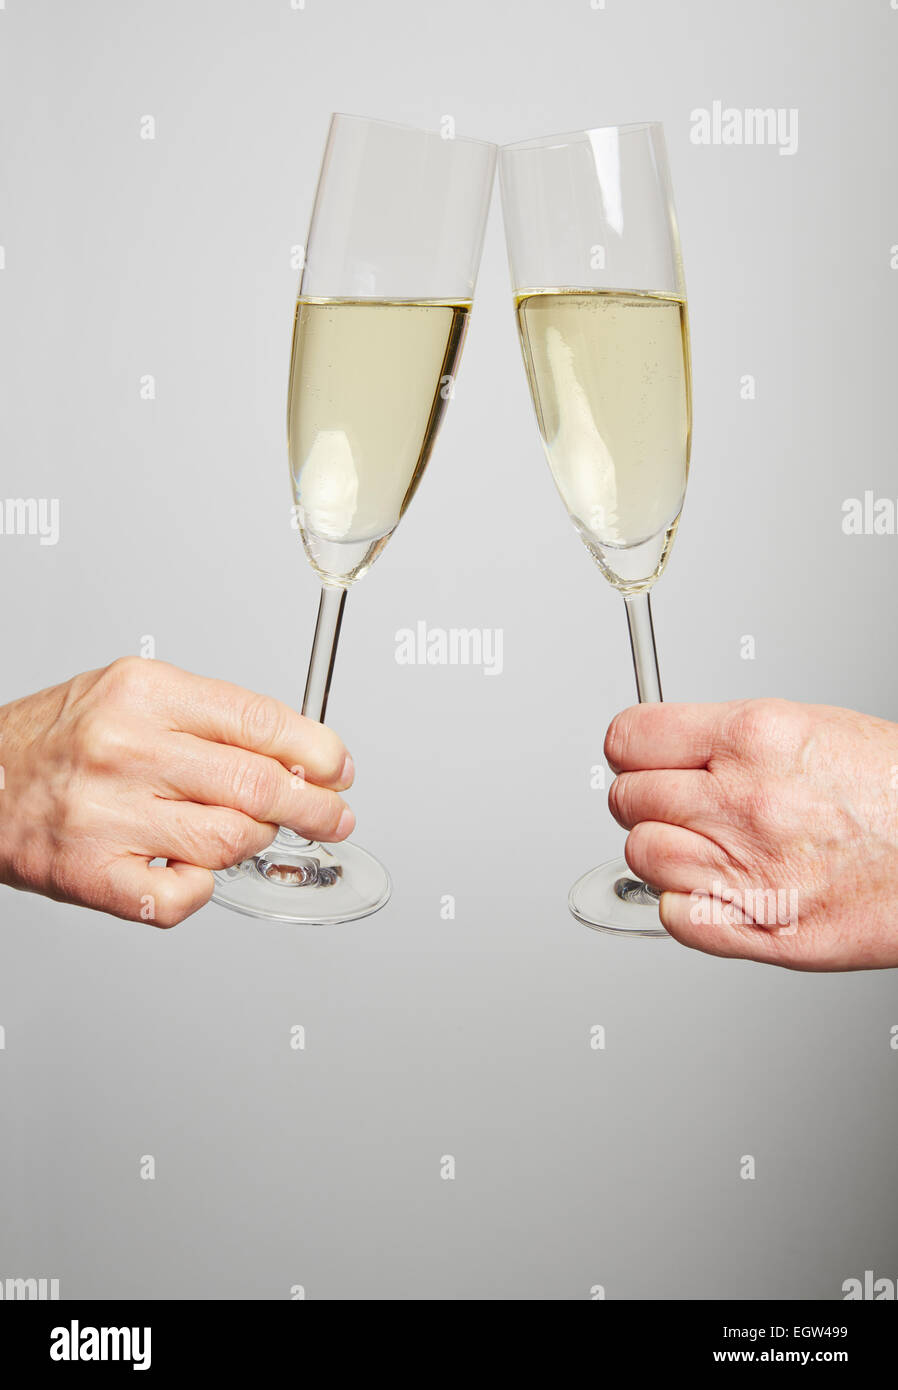 Drinking champagne in a glass for celebration at New Year's Eve - Stock Image